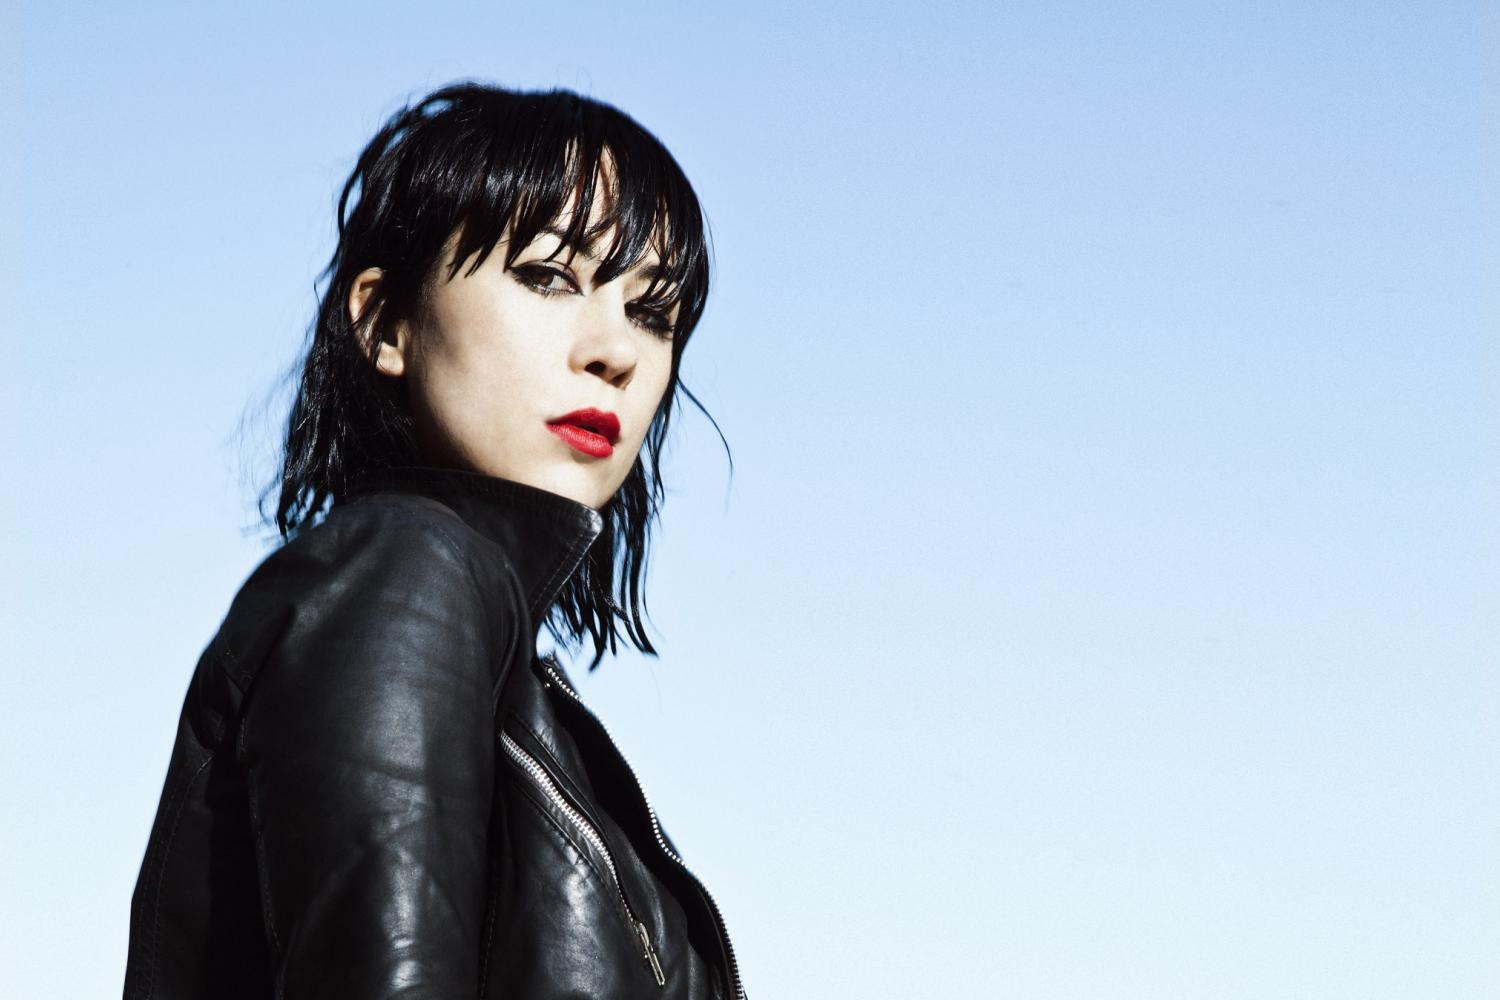 KRISTIN KONTROL (Dee Dee from Dum Dum Girls) announces her debut album for Sub Pop.